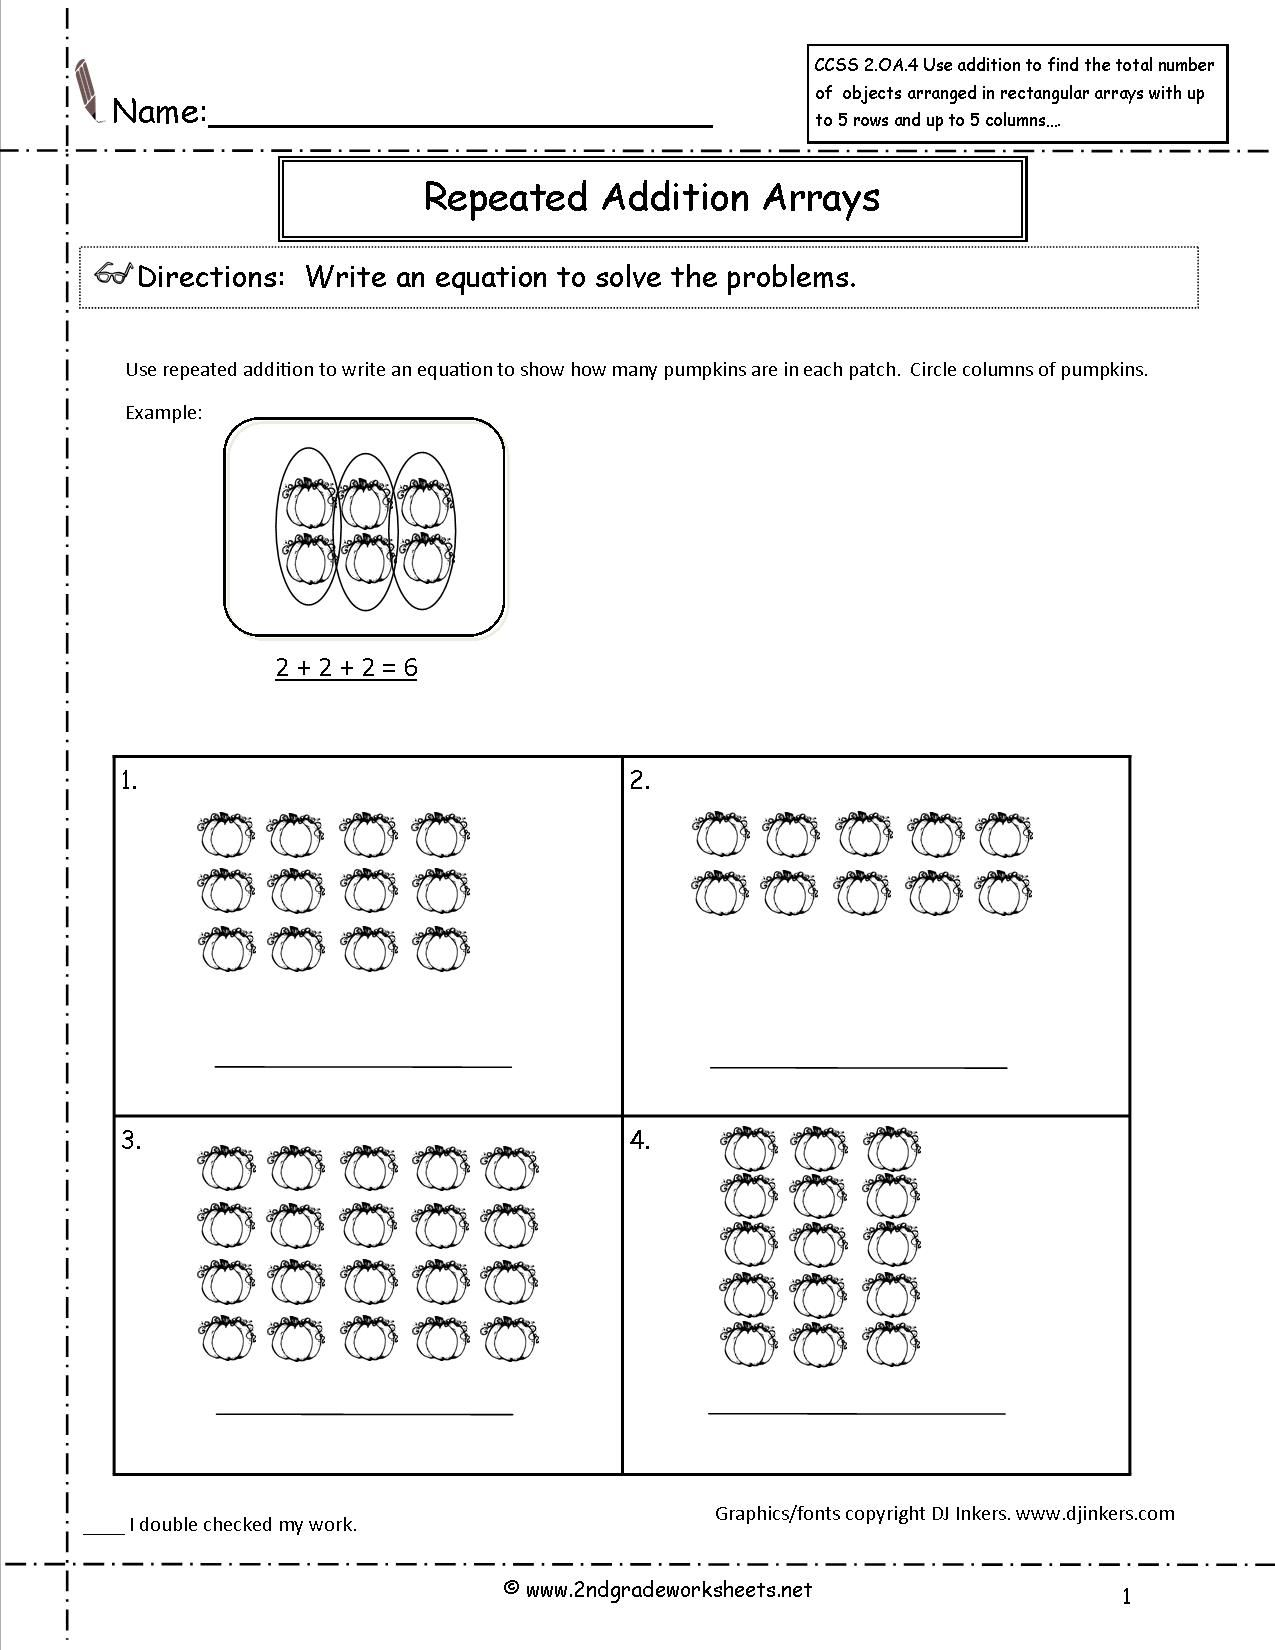 hight resolution of pumpkins repeated addition worksheet   Repeated addition worksheets